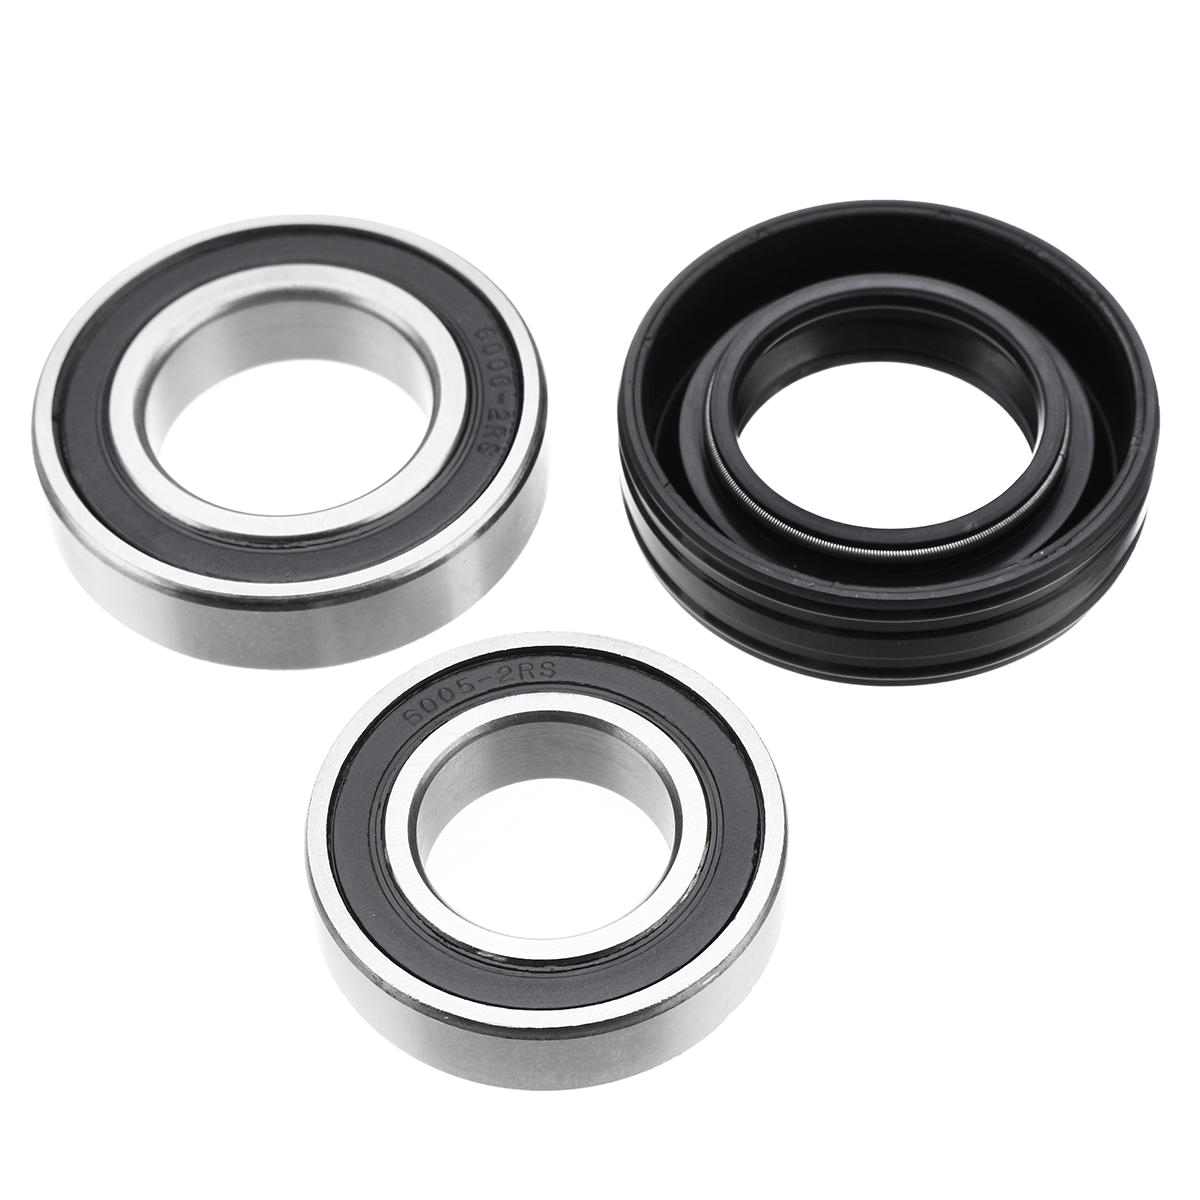 W Washer Tub Bearings and Seal Kit For Kenmore Maytag Whirlpool p